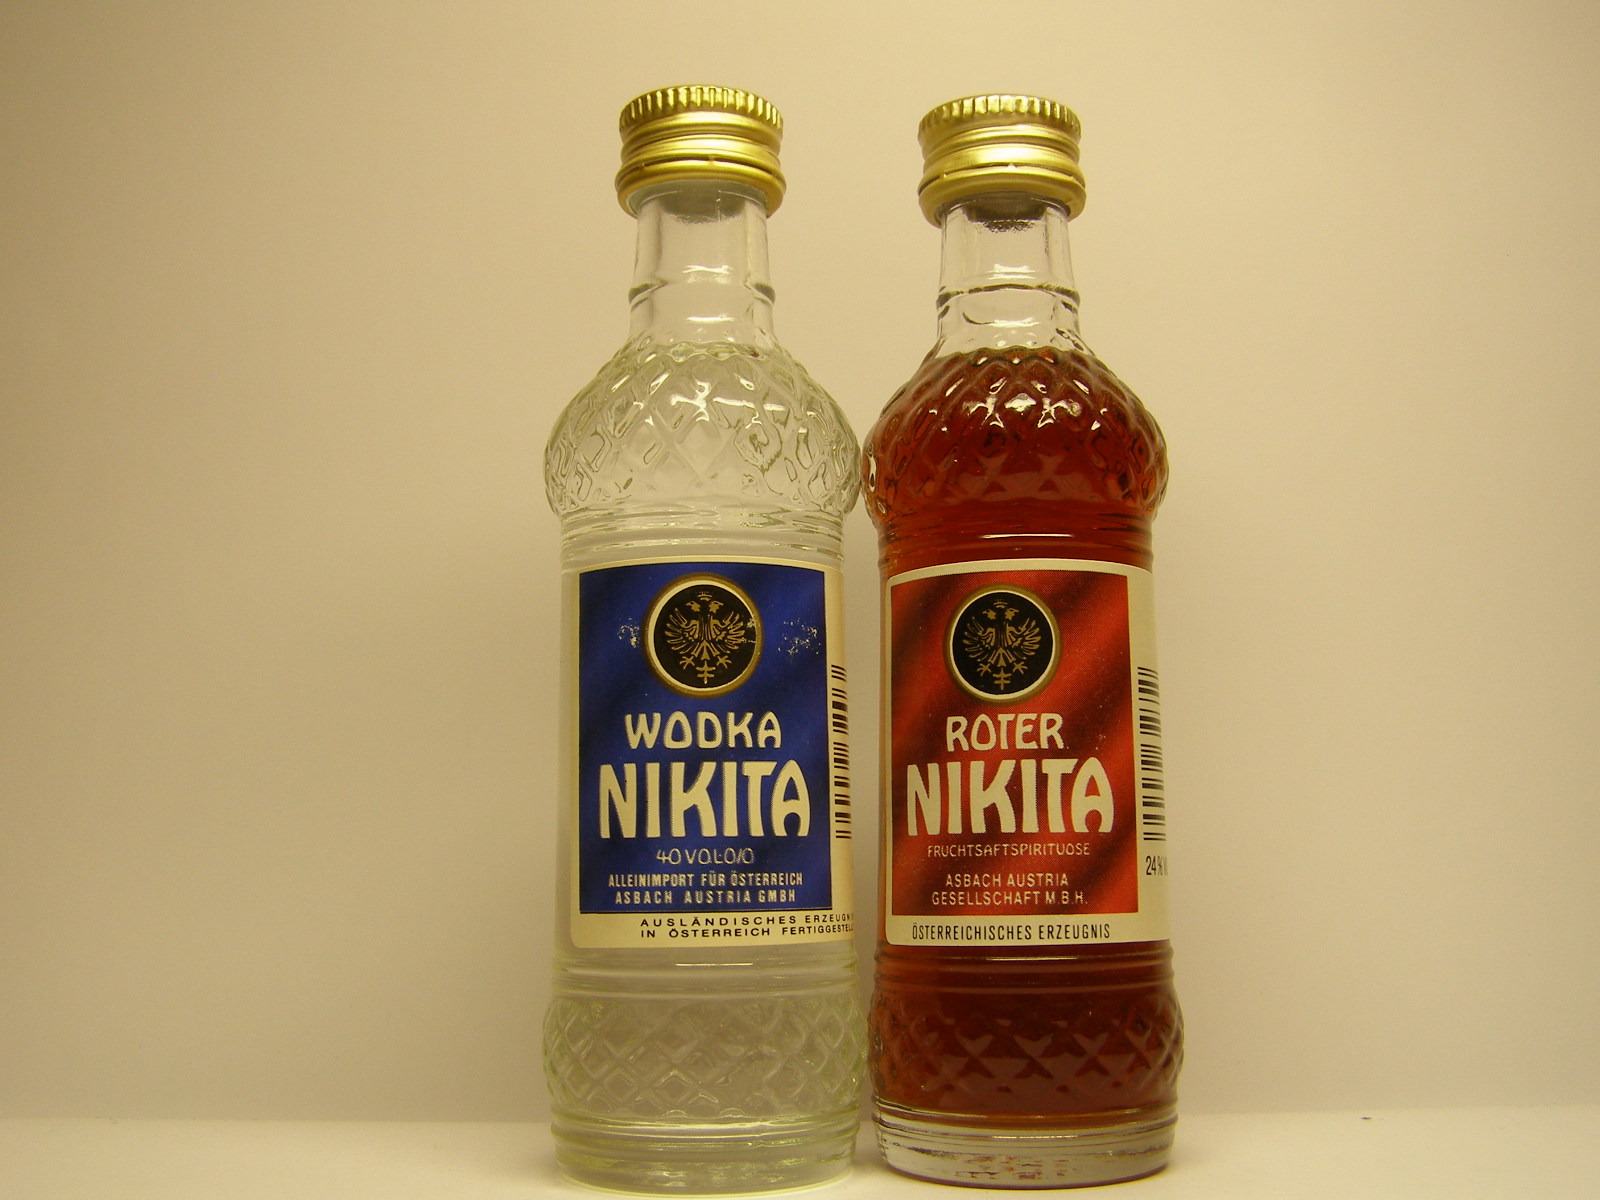 NIKITA Vodka - Roter